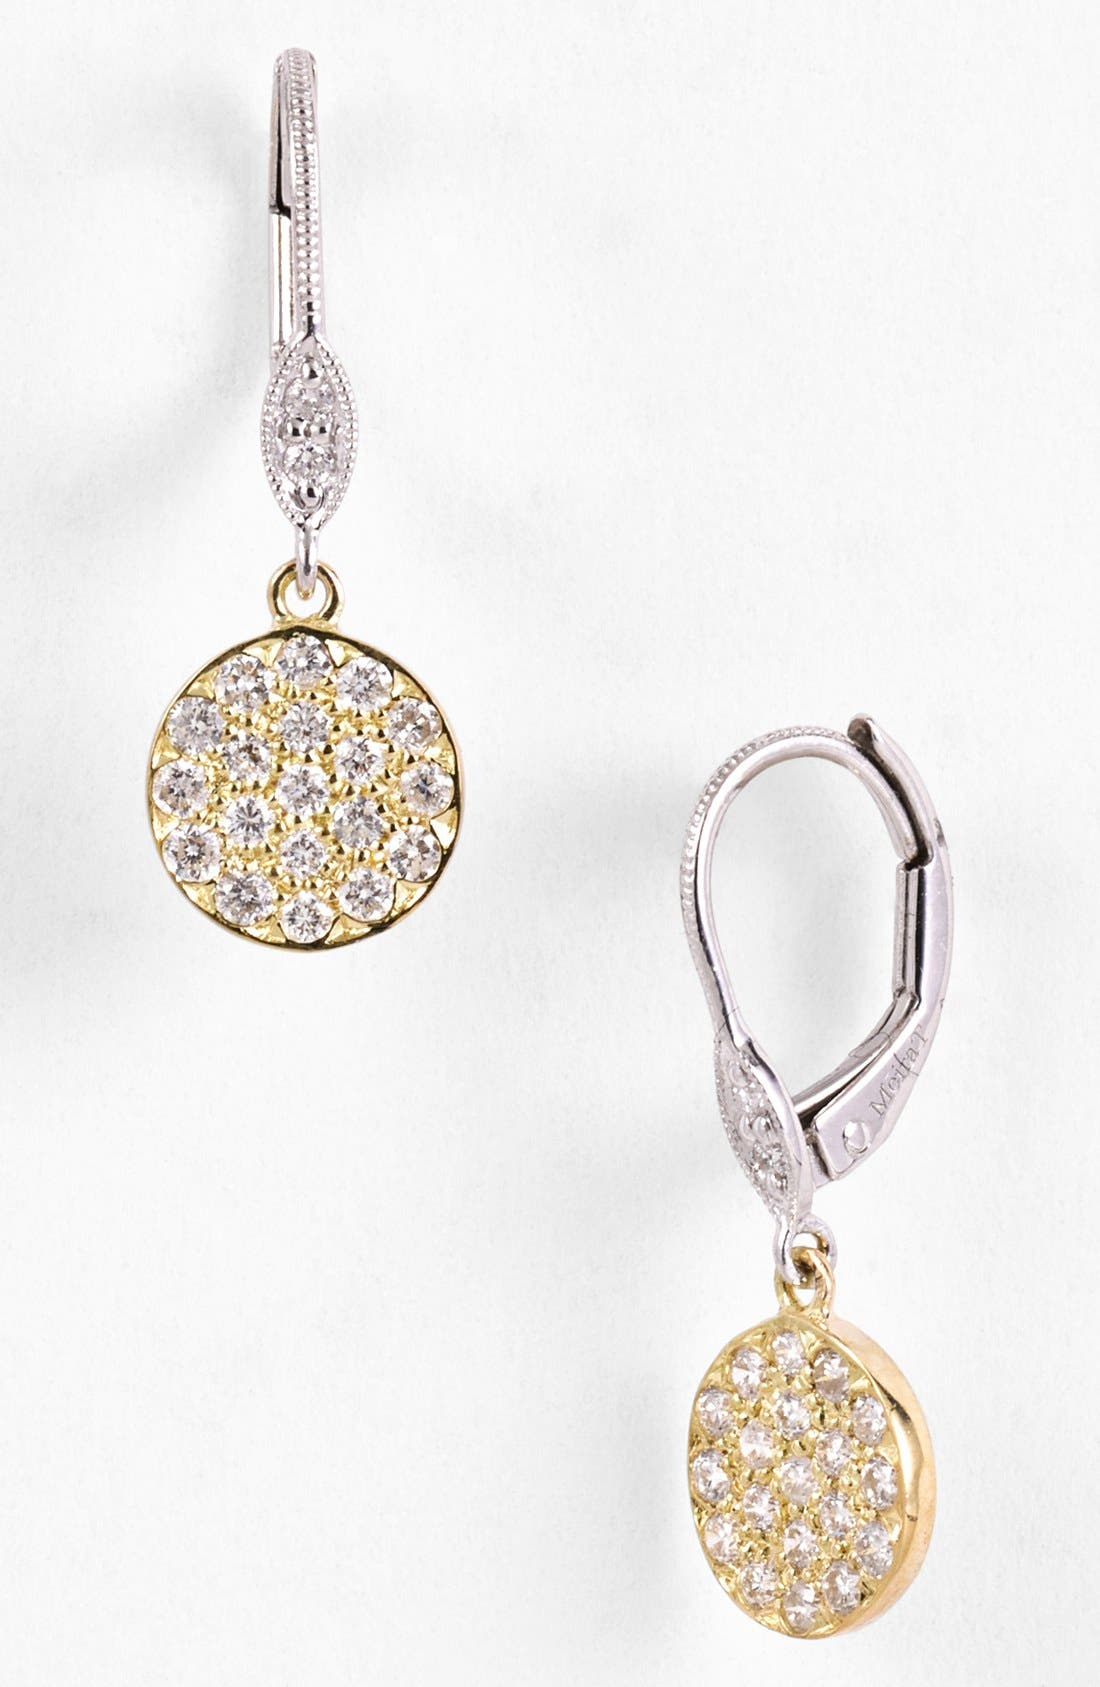 MeiraT 'Dazzling' Diamond Disc Drop Earrings,                         Main,                         color, 710